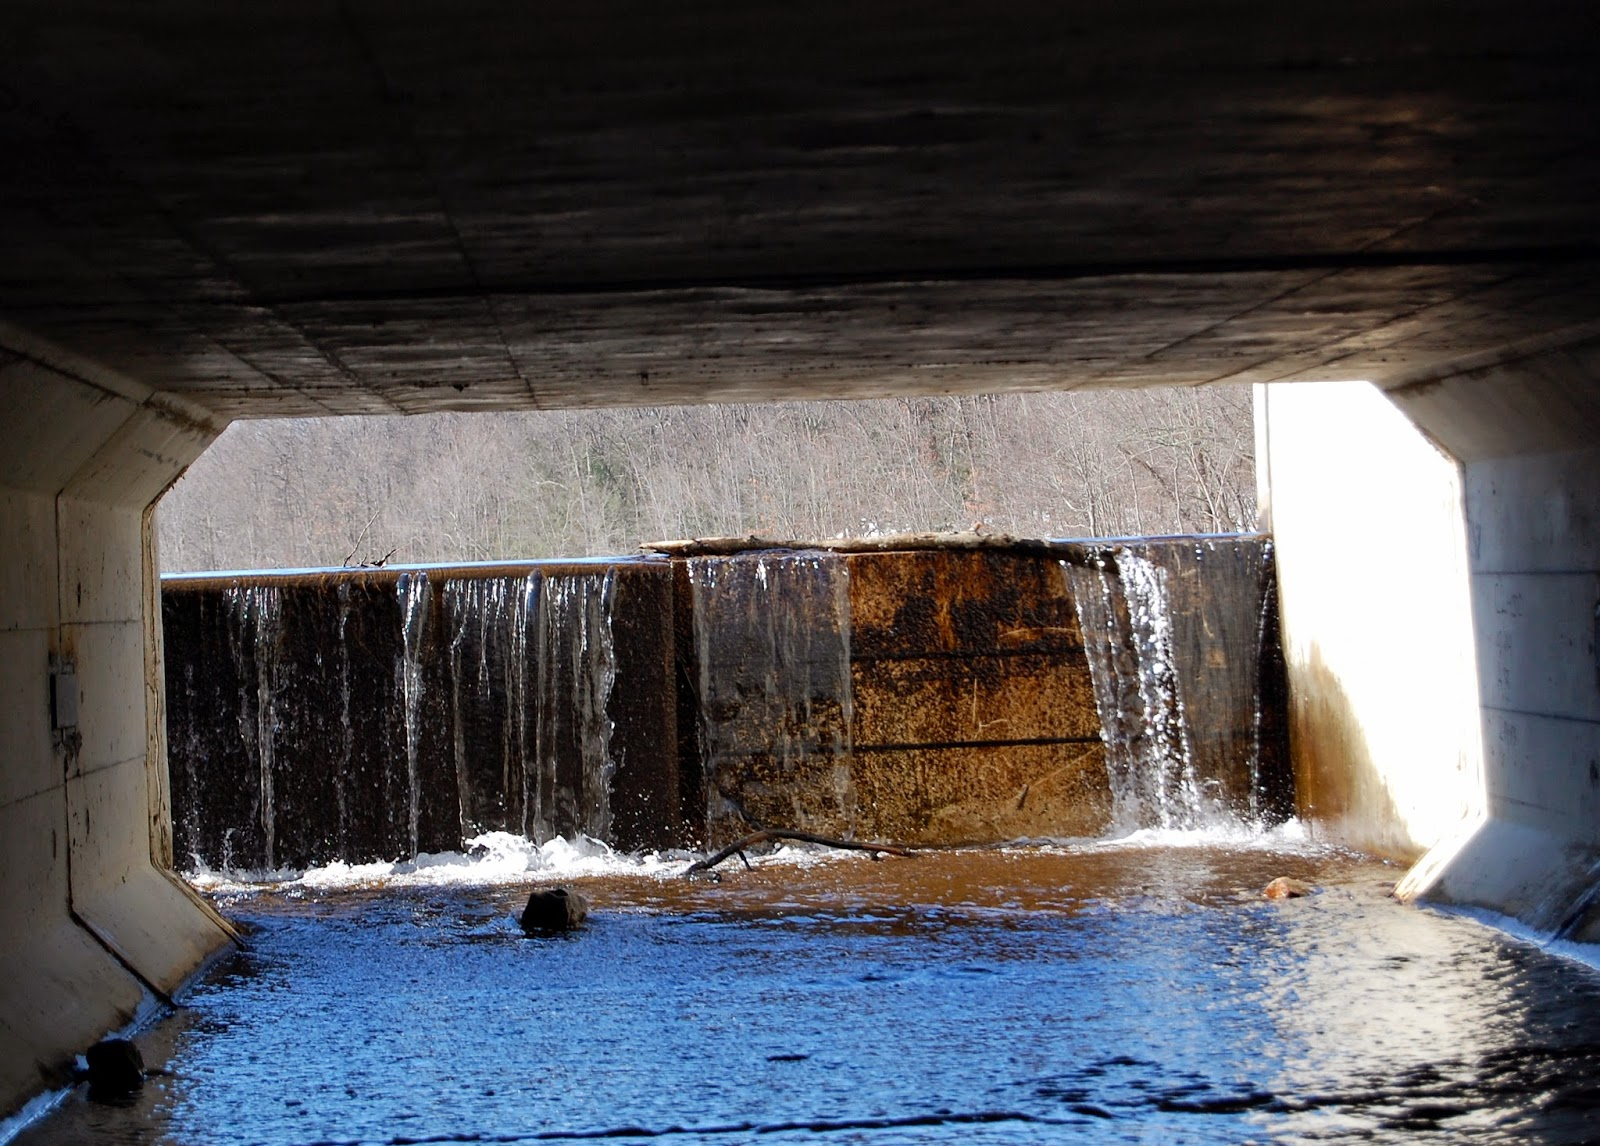 culvert view of the dam